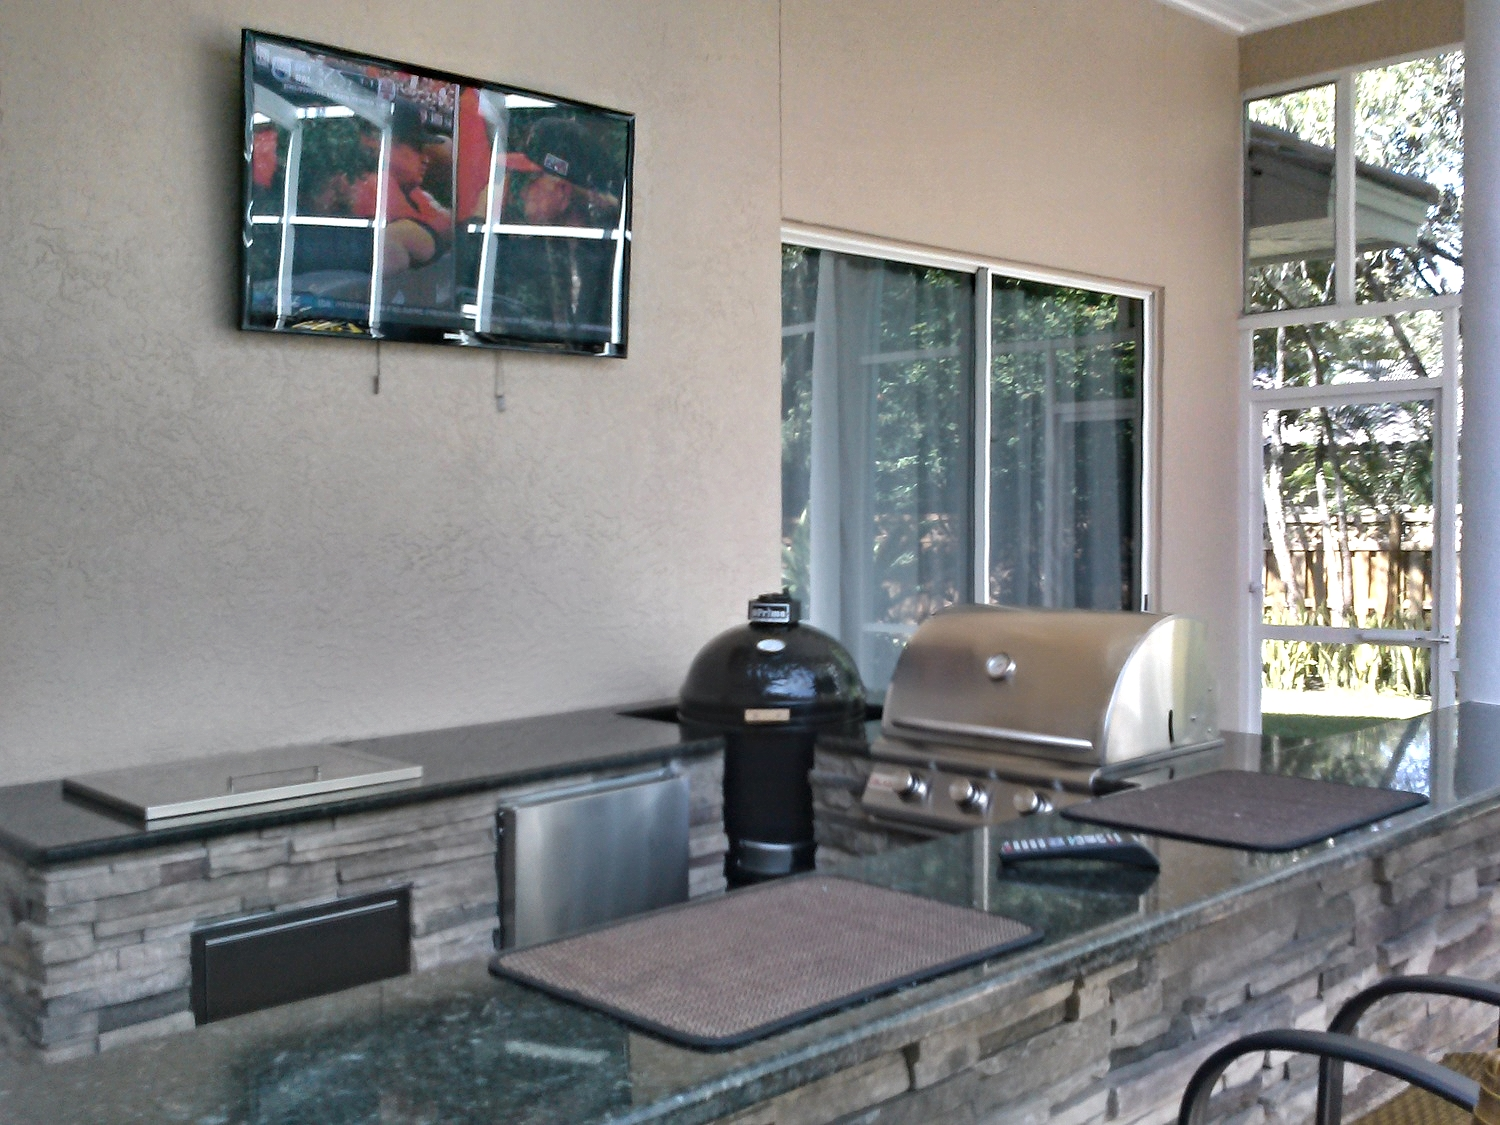 Clark Outdoor Kitchen & Water Feature - Over the bar